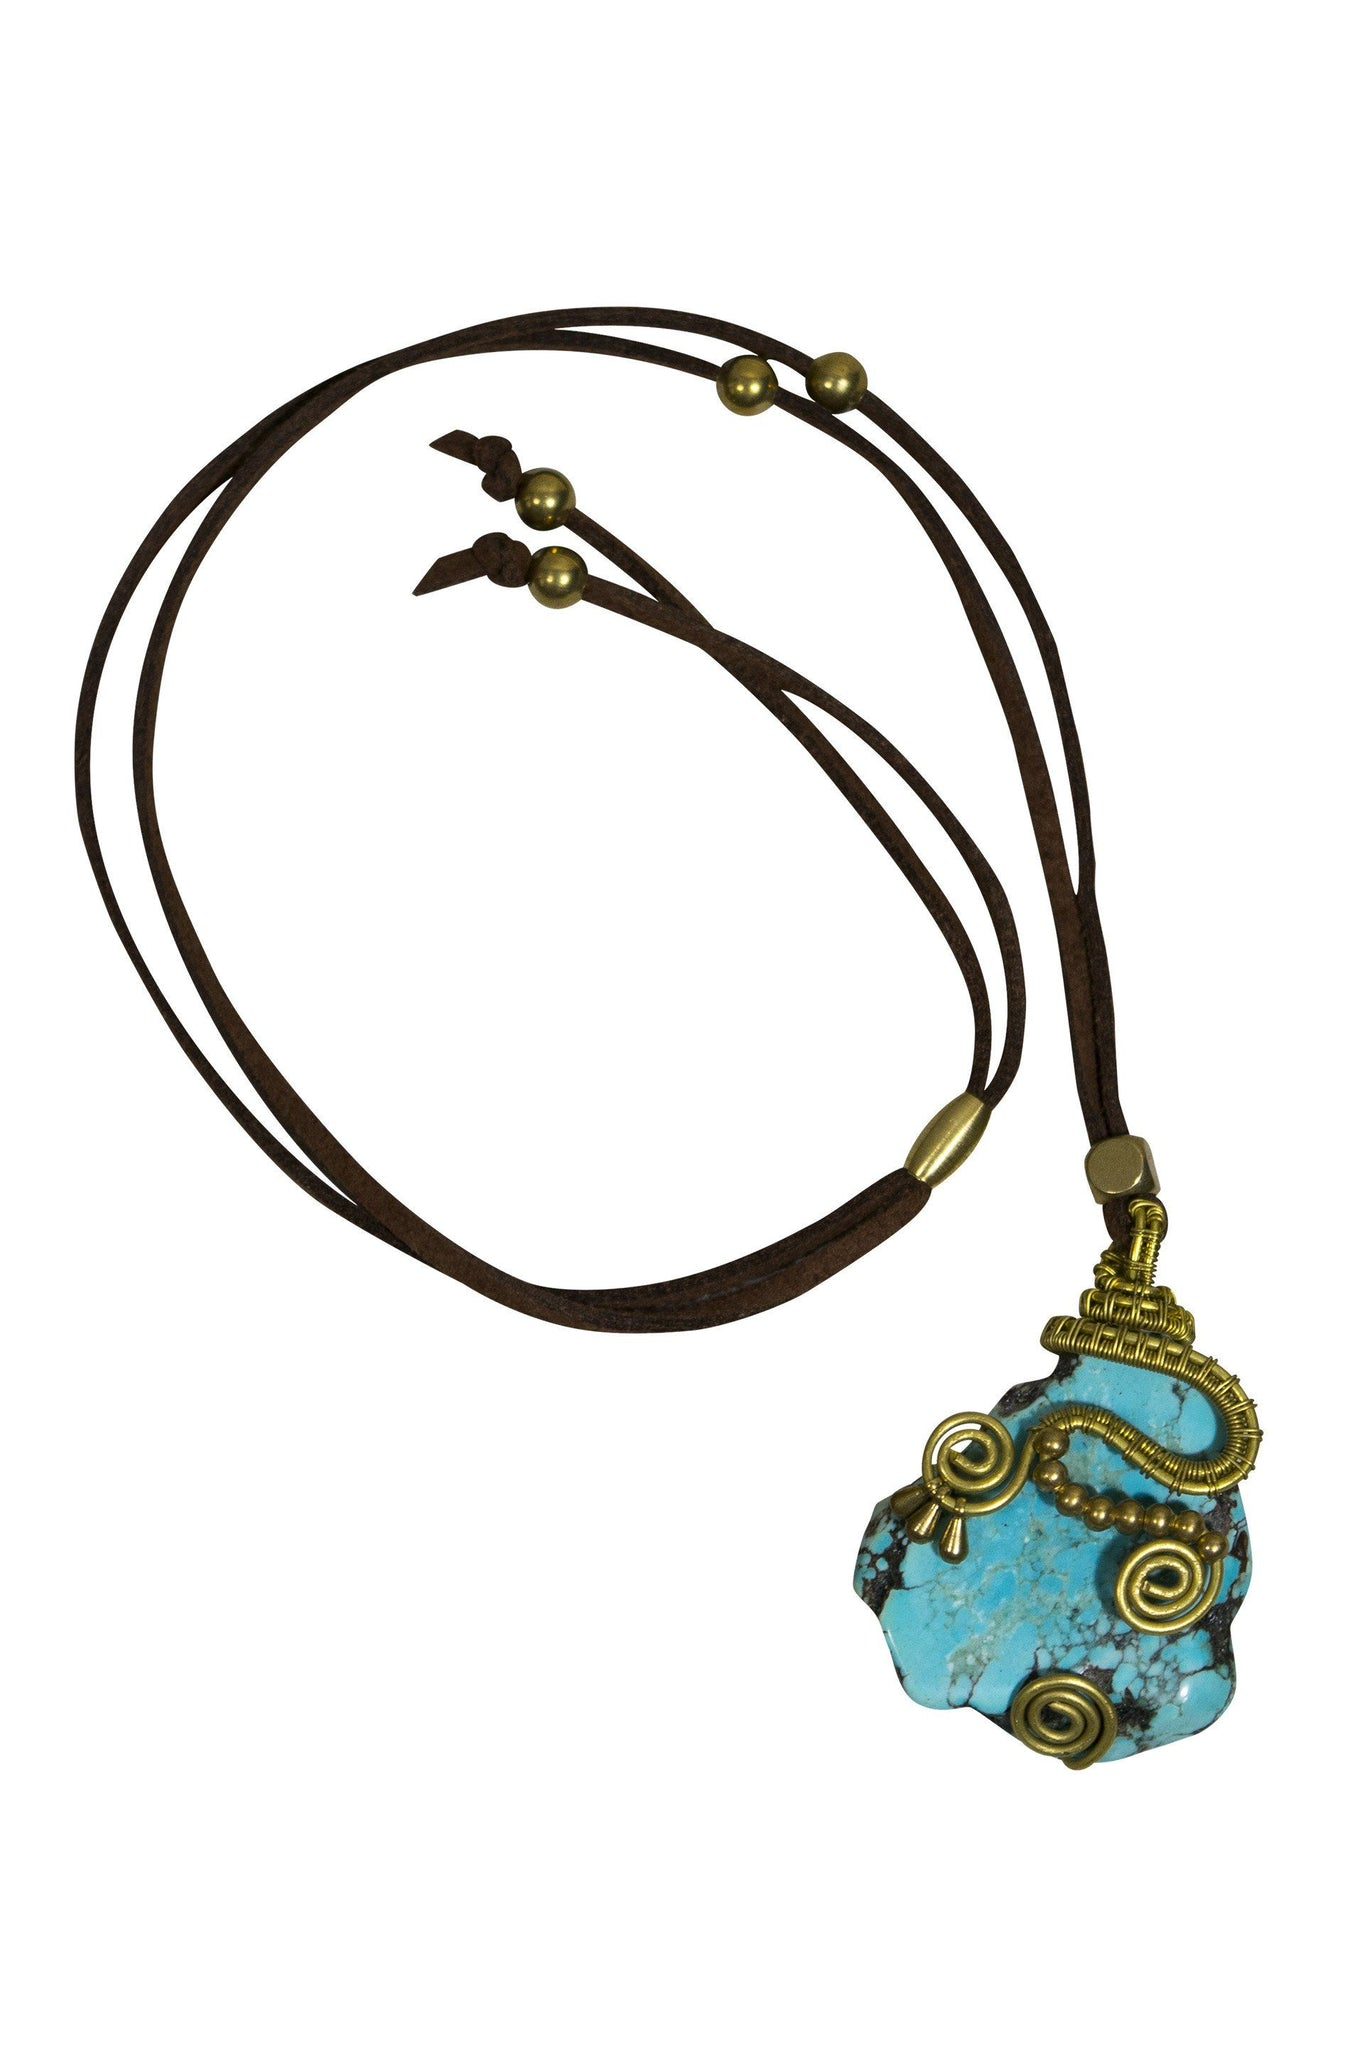 Necklace Boho Leather Strap Look Alike Rock Gold Wire - CCCollections